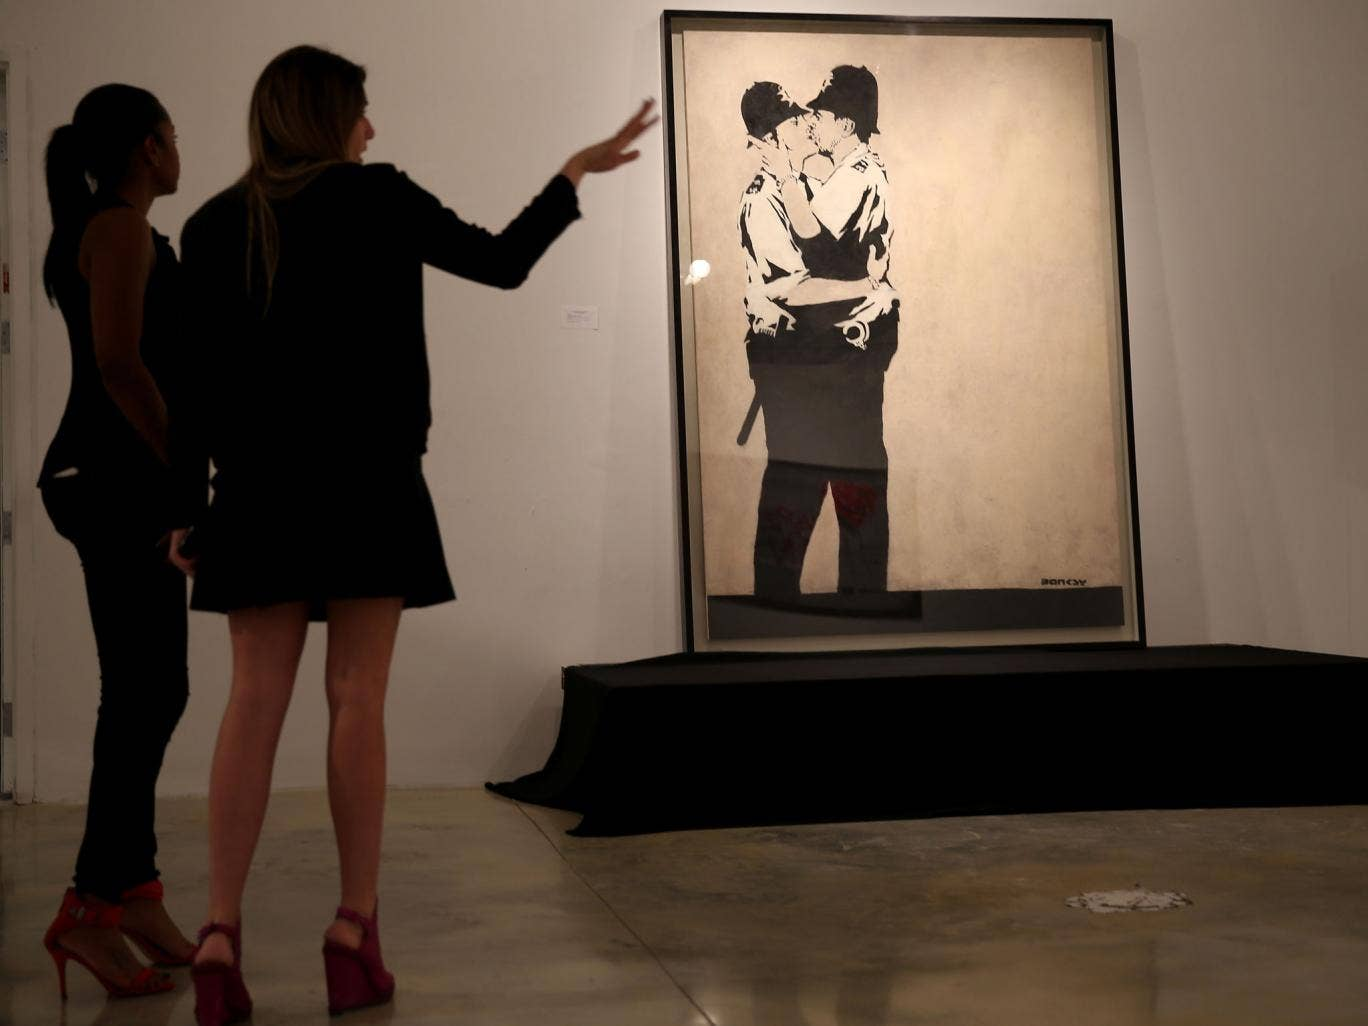 People stand in front of Banksy's 'Kissing Coppers' before it sold for $575,000 at auction in Miami